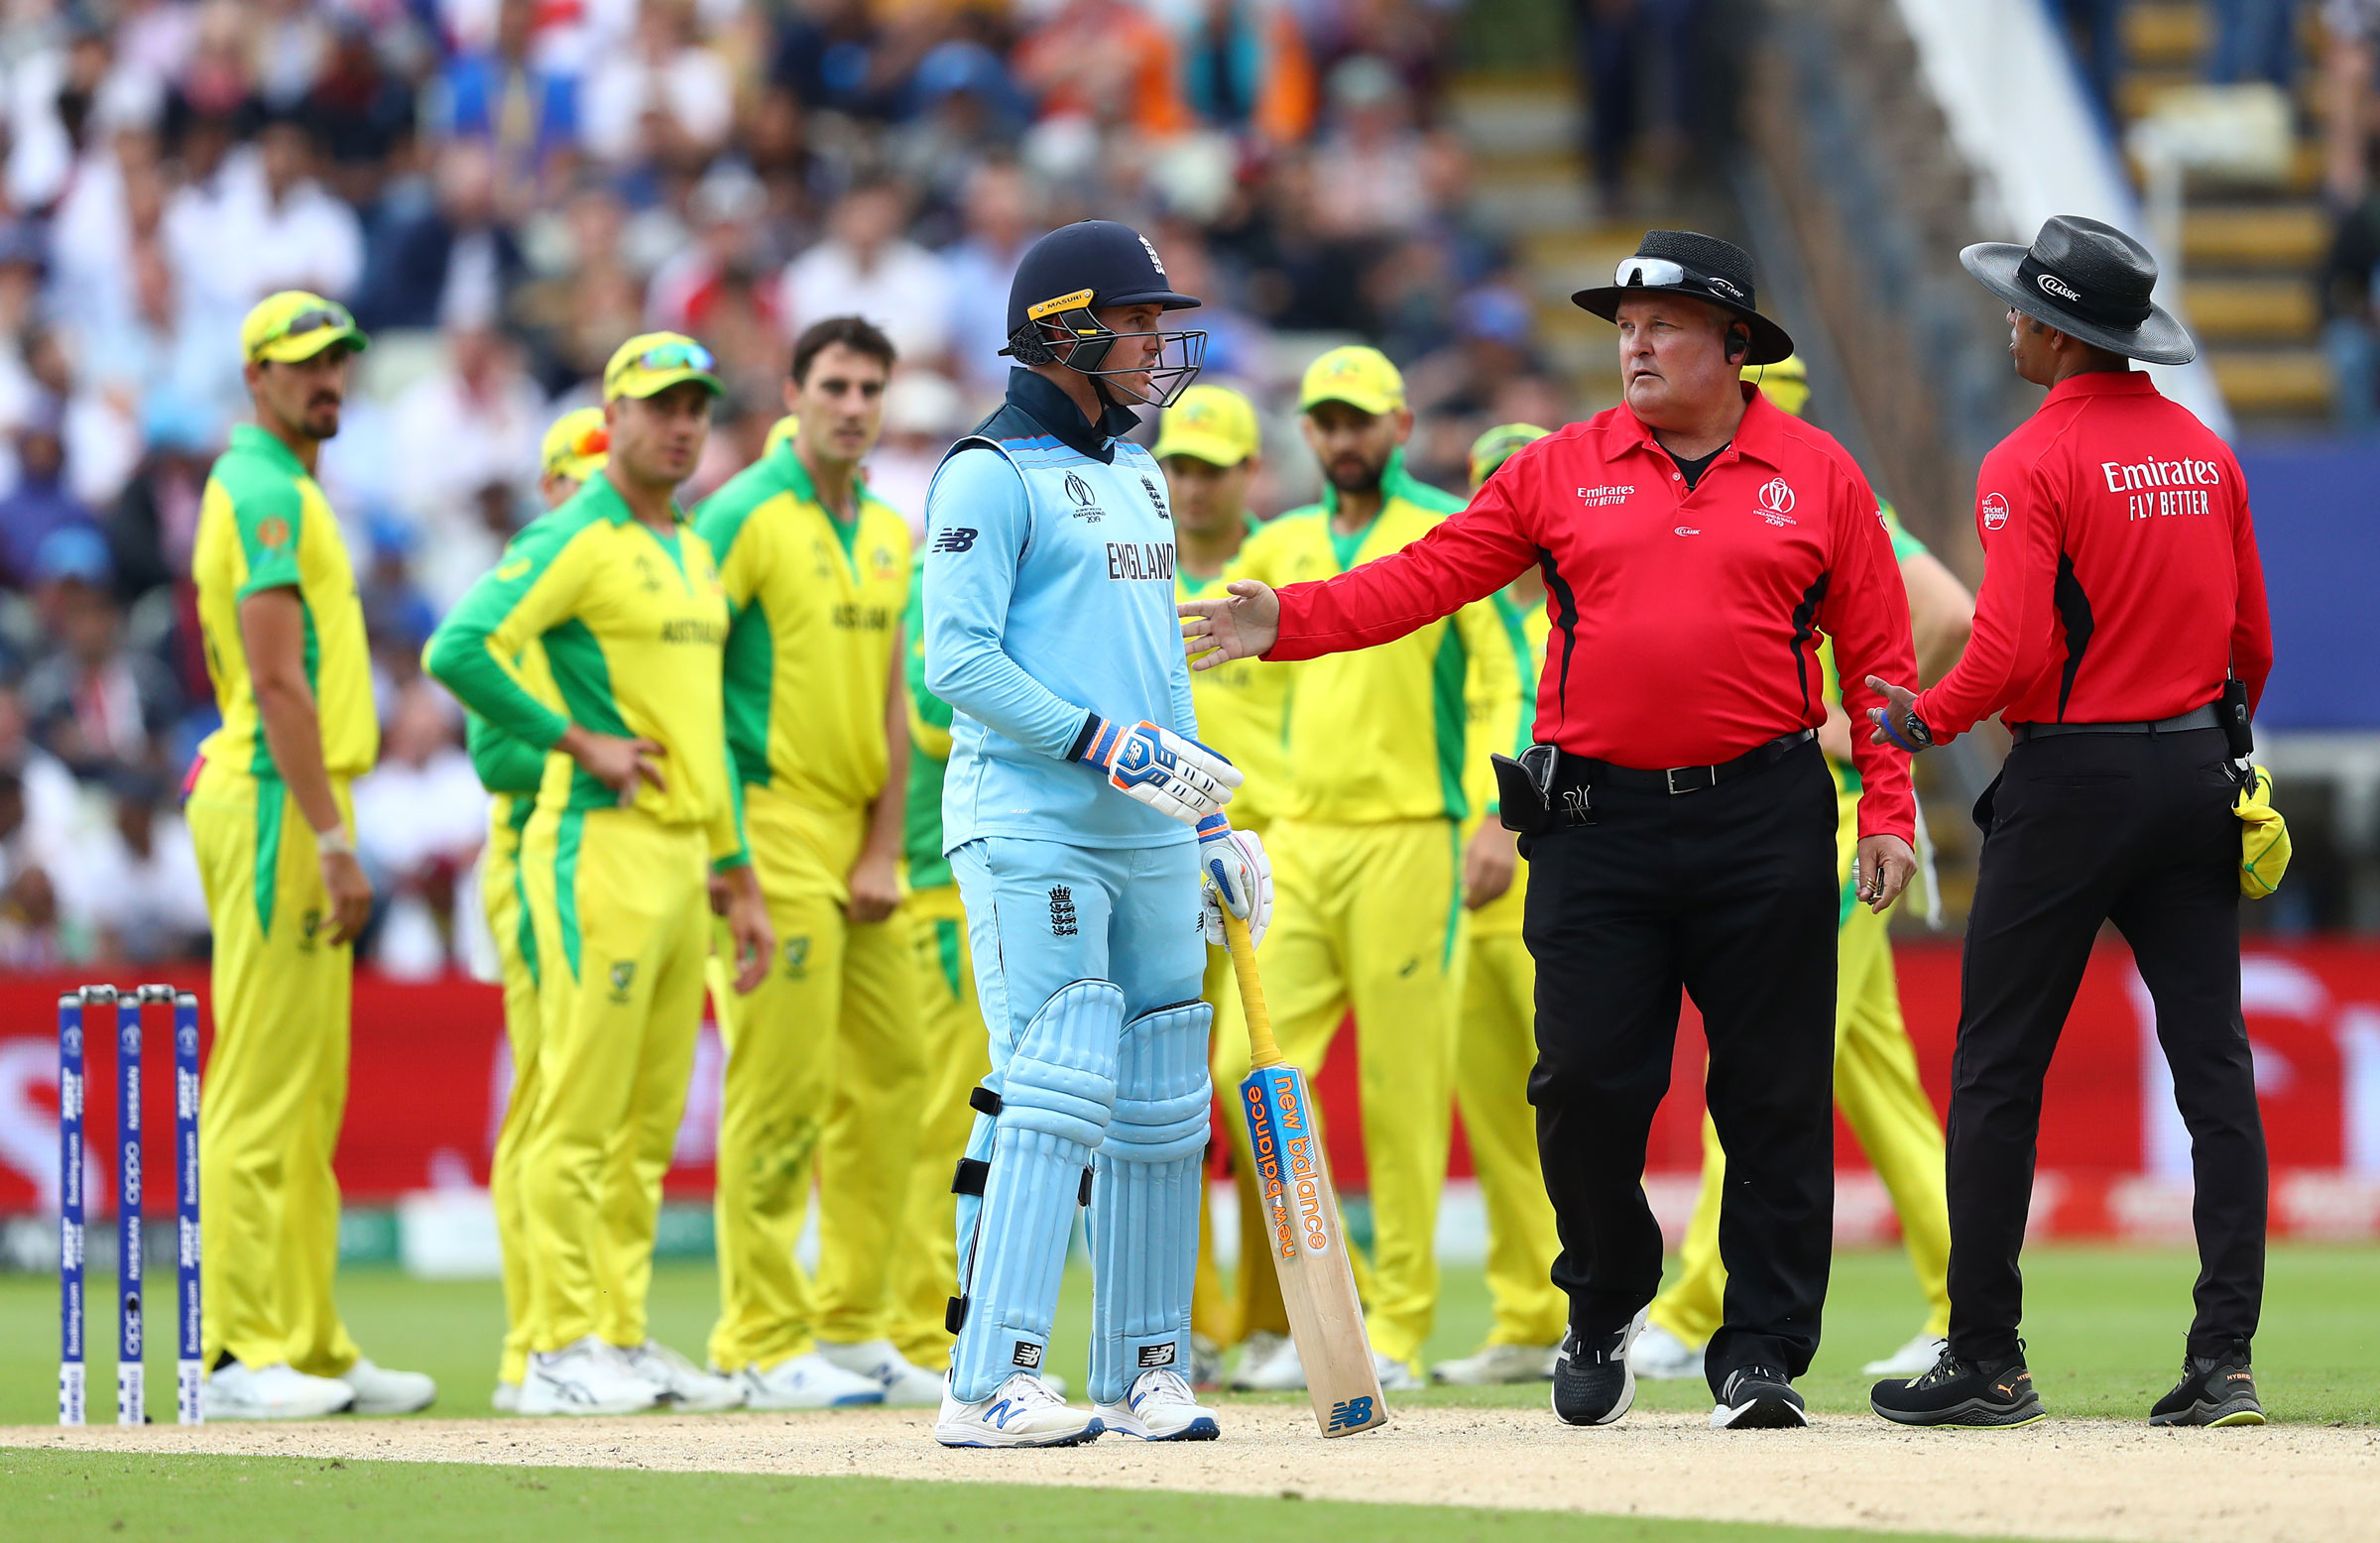 Umpires named for World Cup final